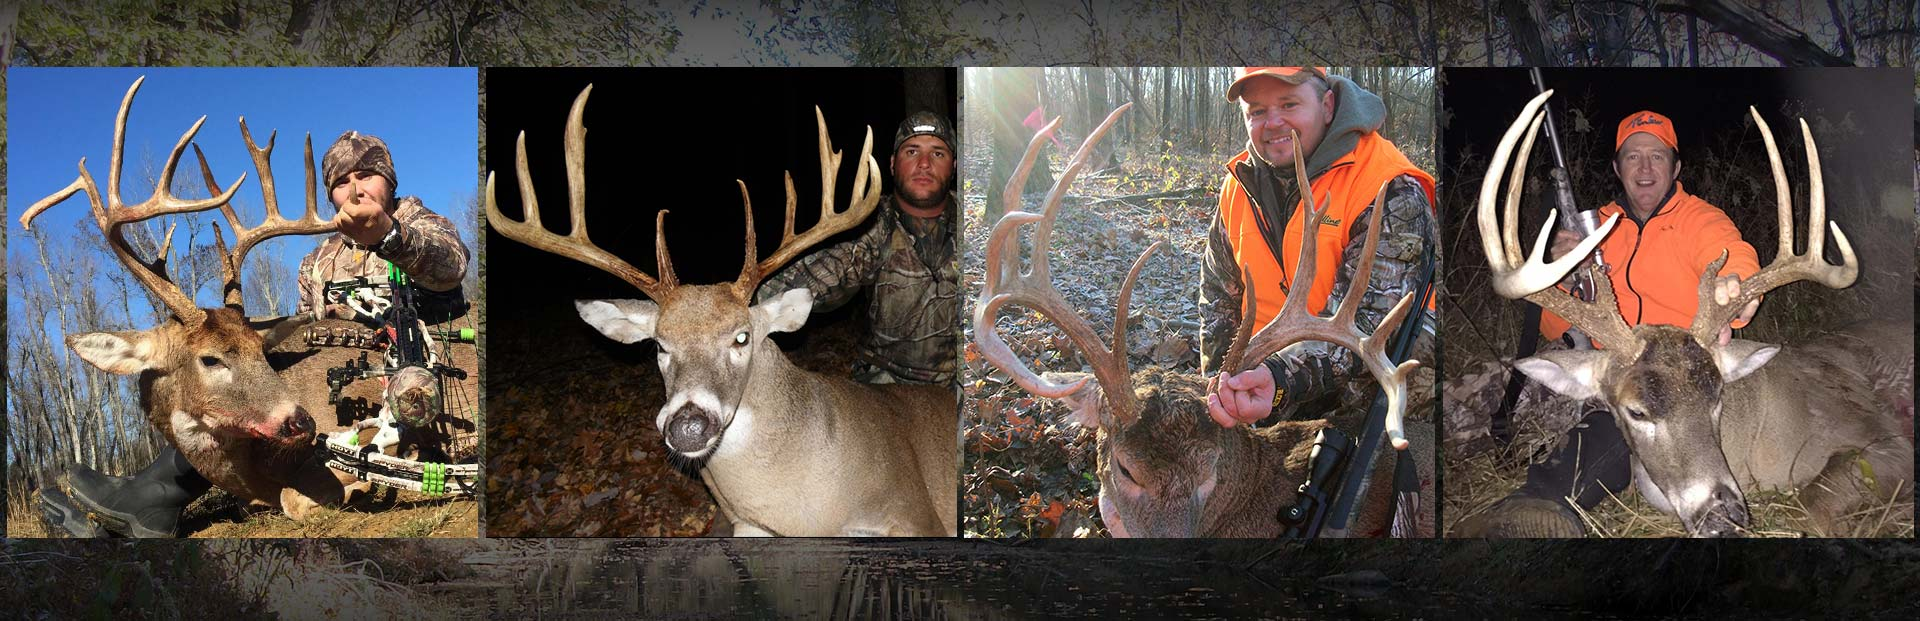 Illinois Ohio Valley Trophy Hunt  - Testimonials